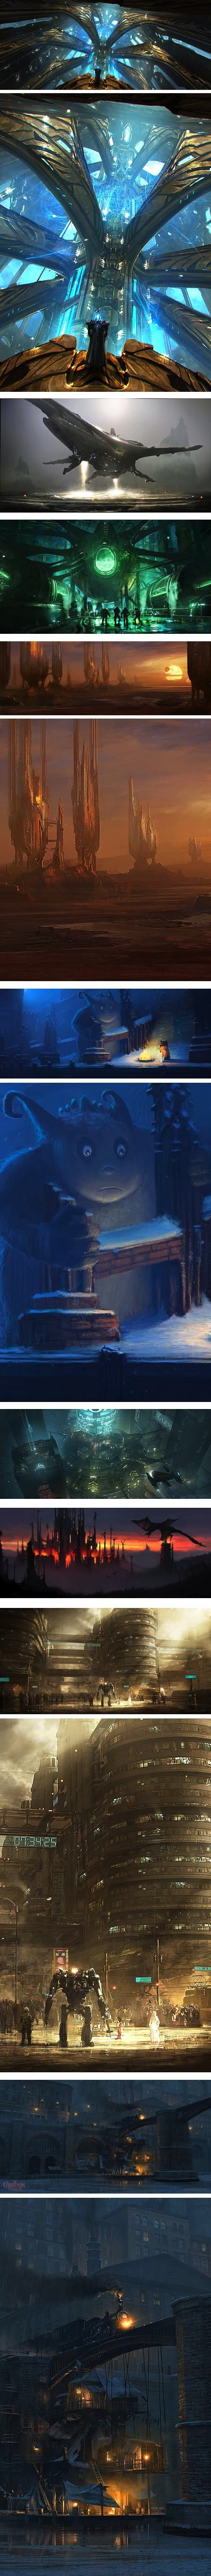 Concept & Visual Dev. | Lines and Colors :: a blog about drawing, painting, illustration, comics, concept art and other visual arts | Page 4